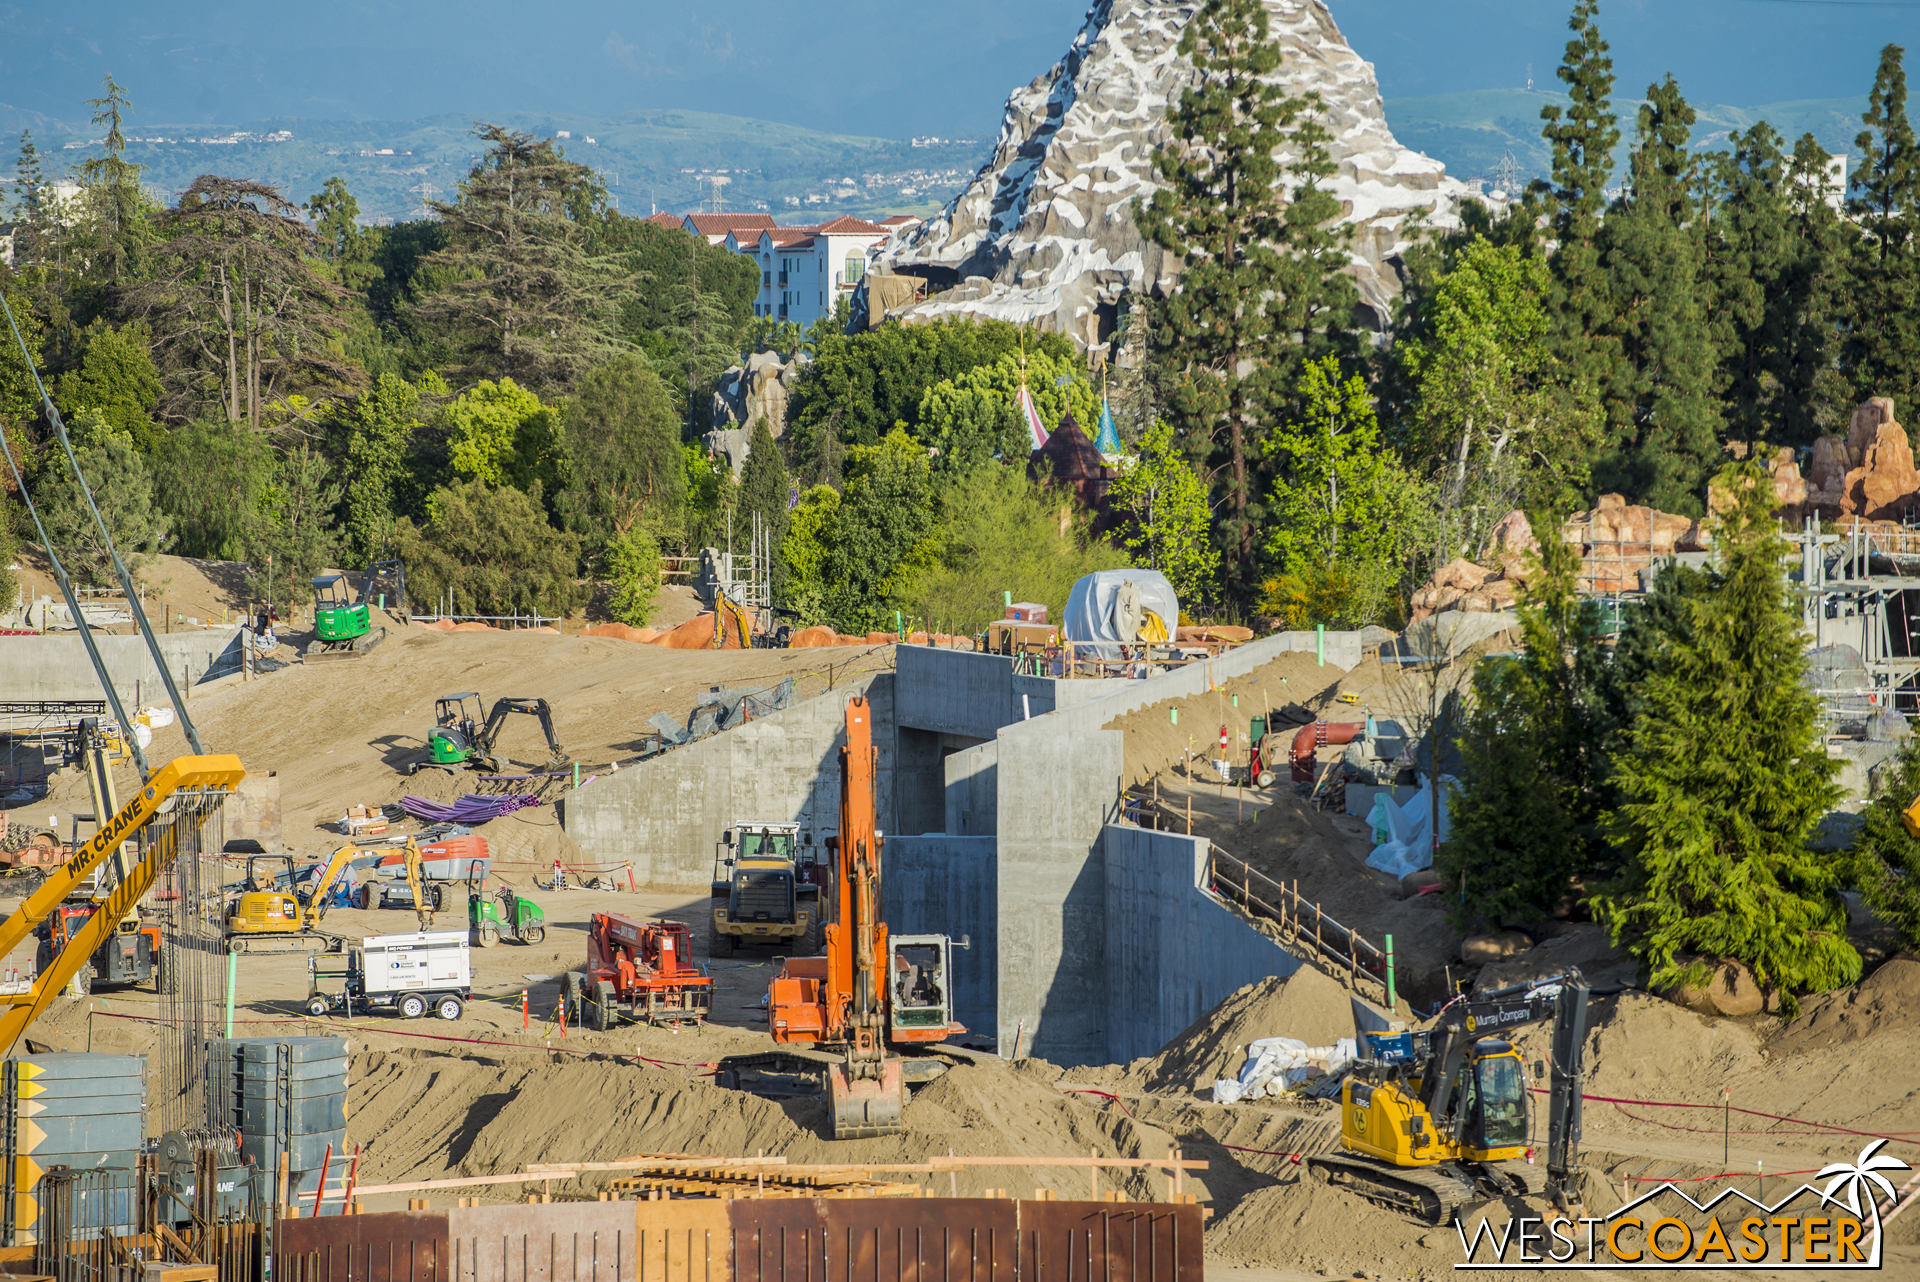 One of the two tunnels forming the main entrance off Big Thunder Trail.